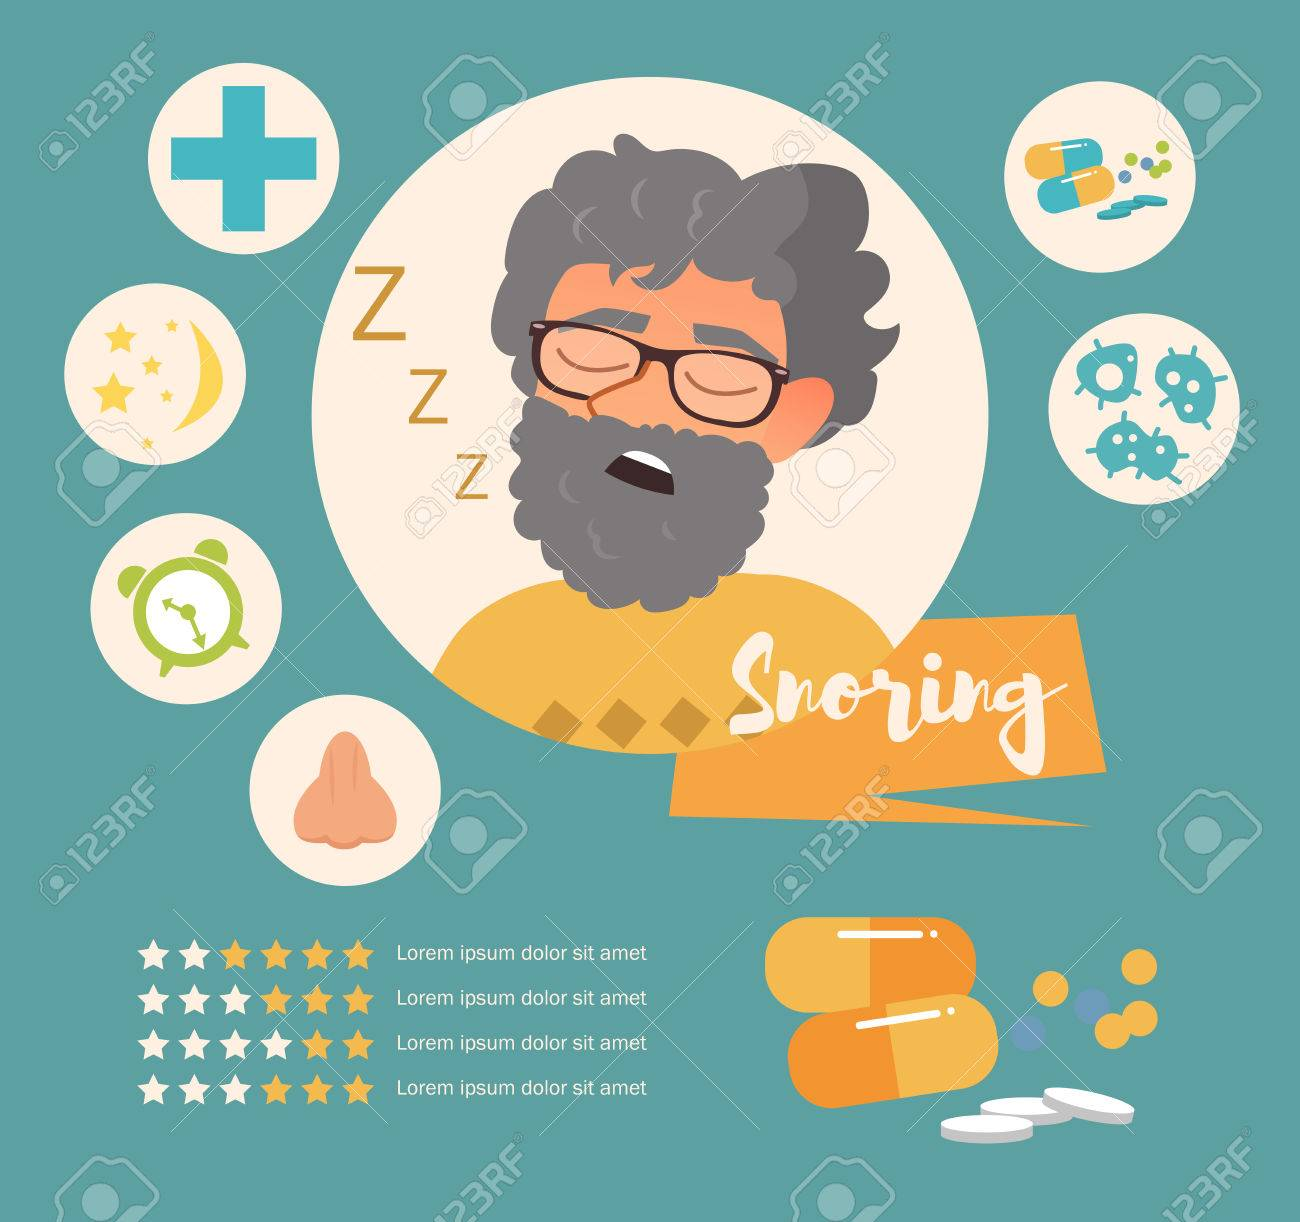 Snoring Vector Art On A White Background Royalty Cliparts 1300x1222